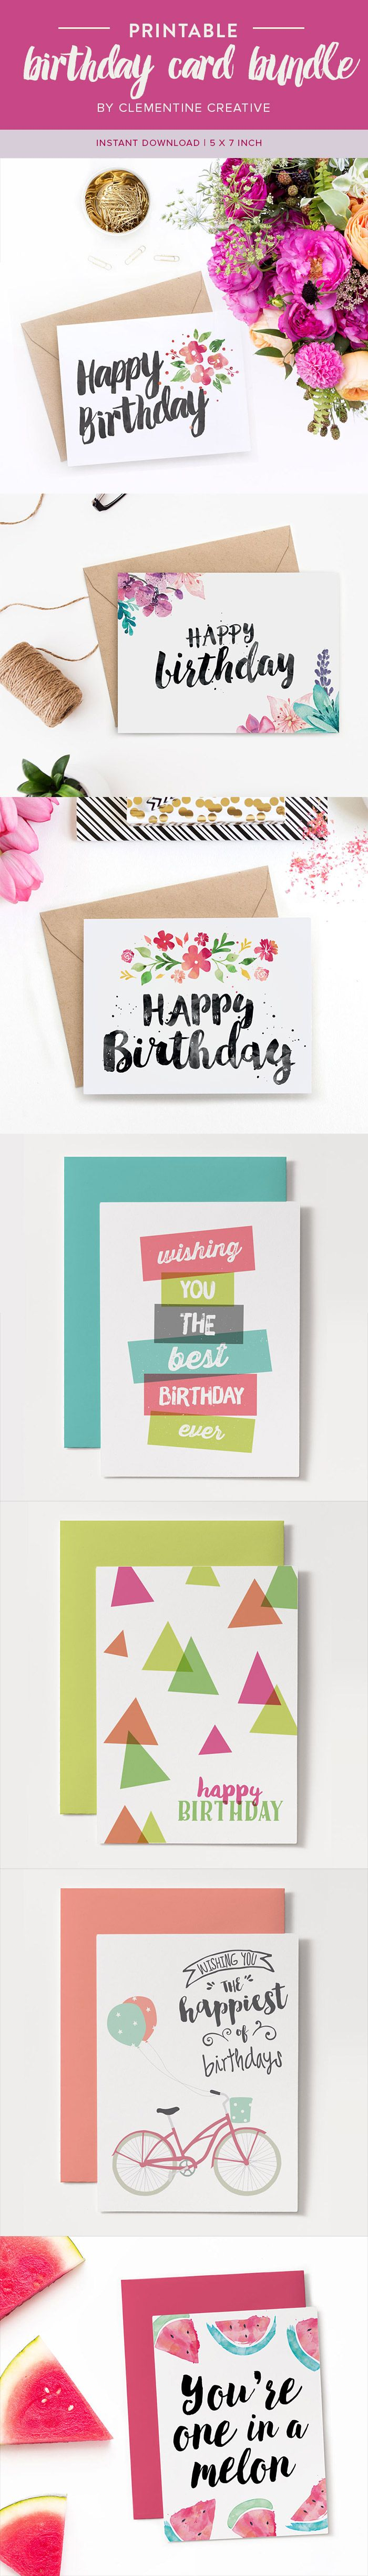 Pin By Bhavana Reddy On Greeting And Envelope Ideas Pinterest